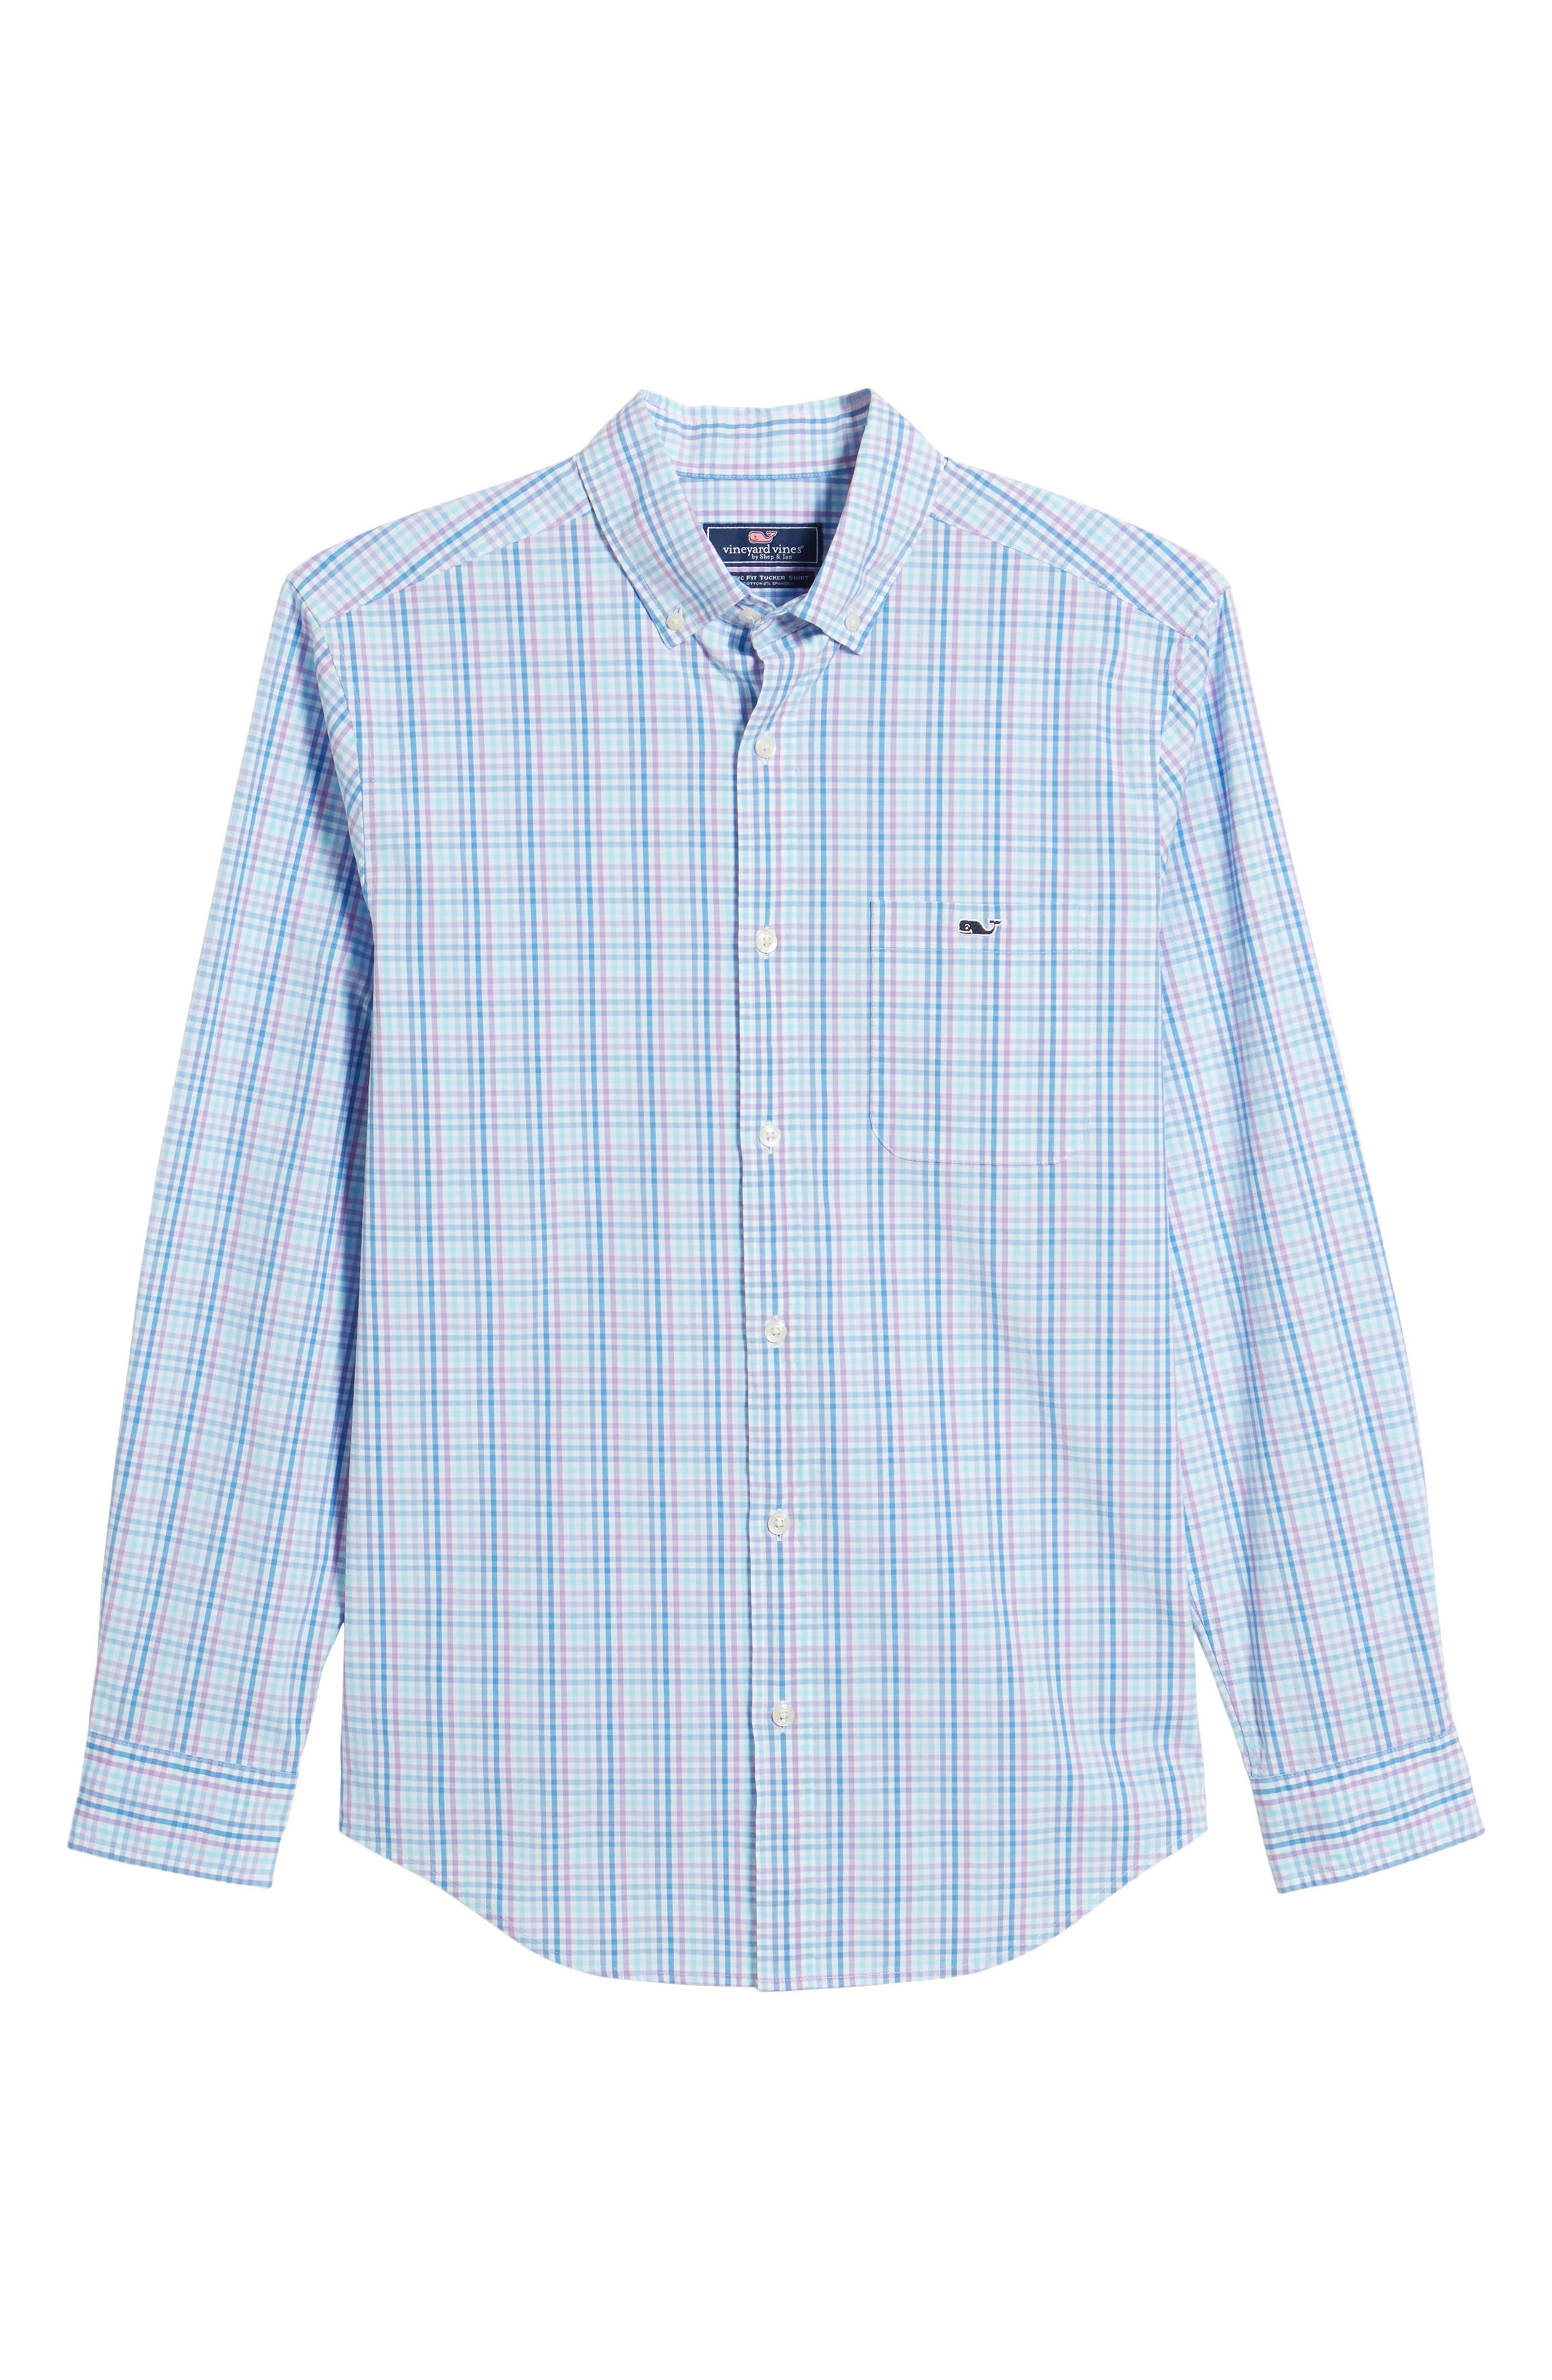 Friendly Island Classic Fit Stretch Check Sport Shirt,                             Alternate thumbnail 6, color,                             526